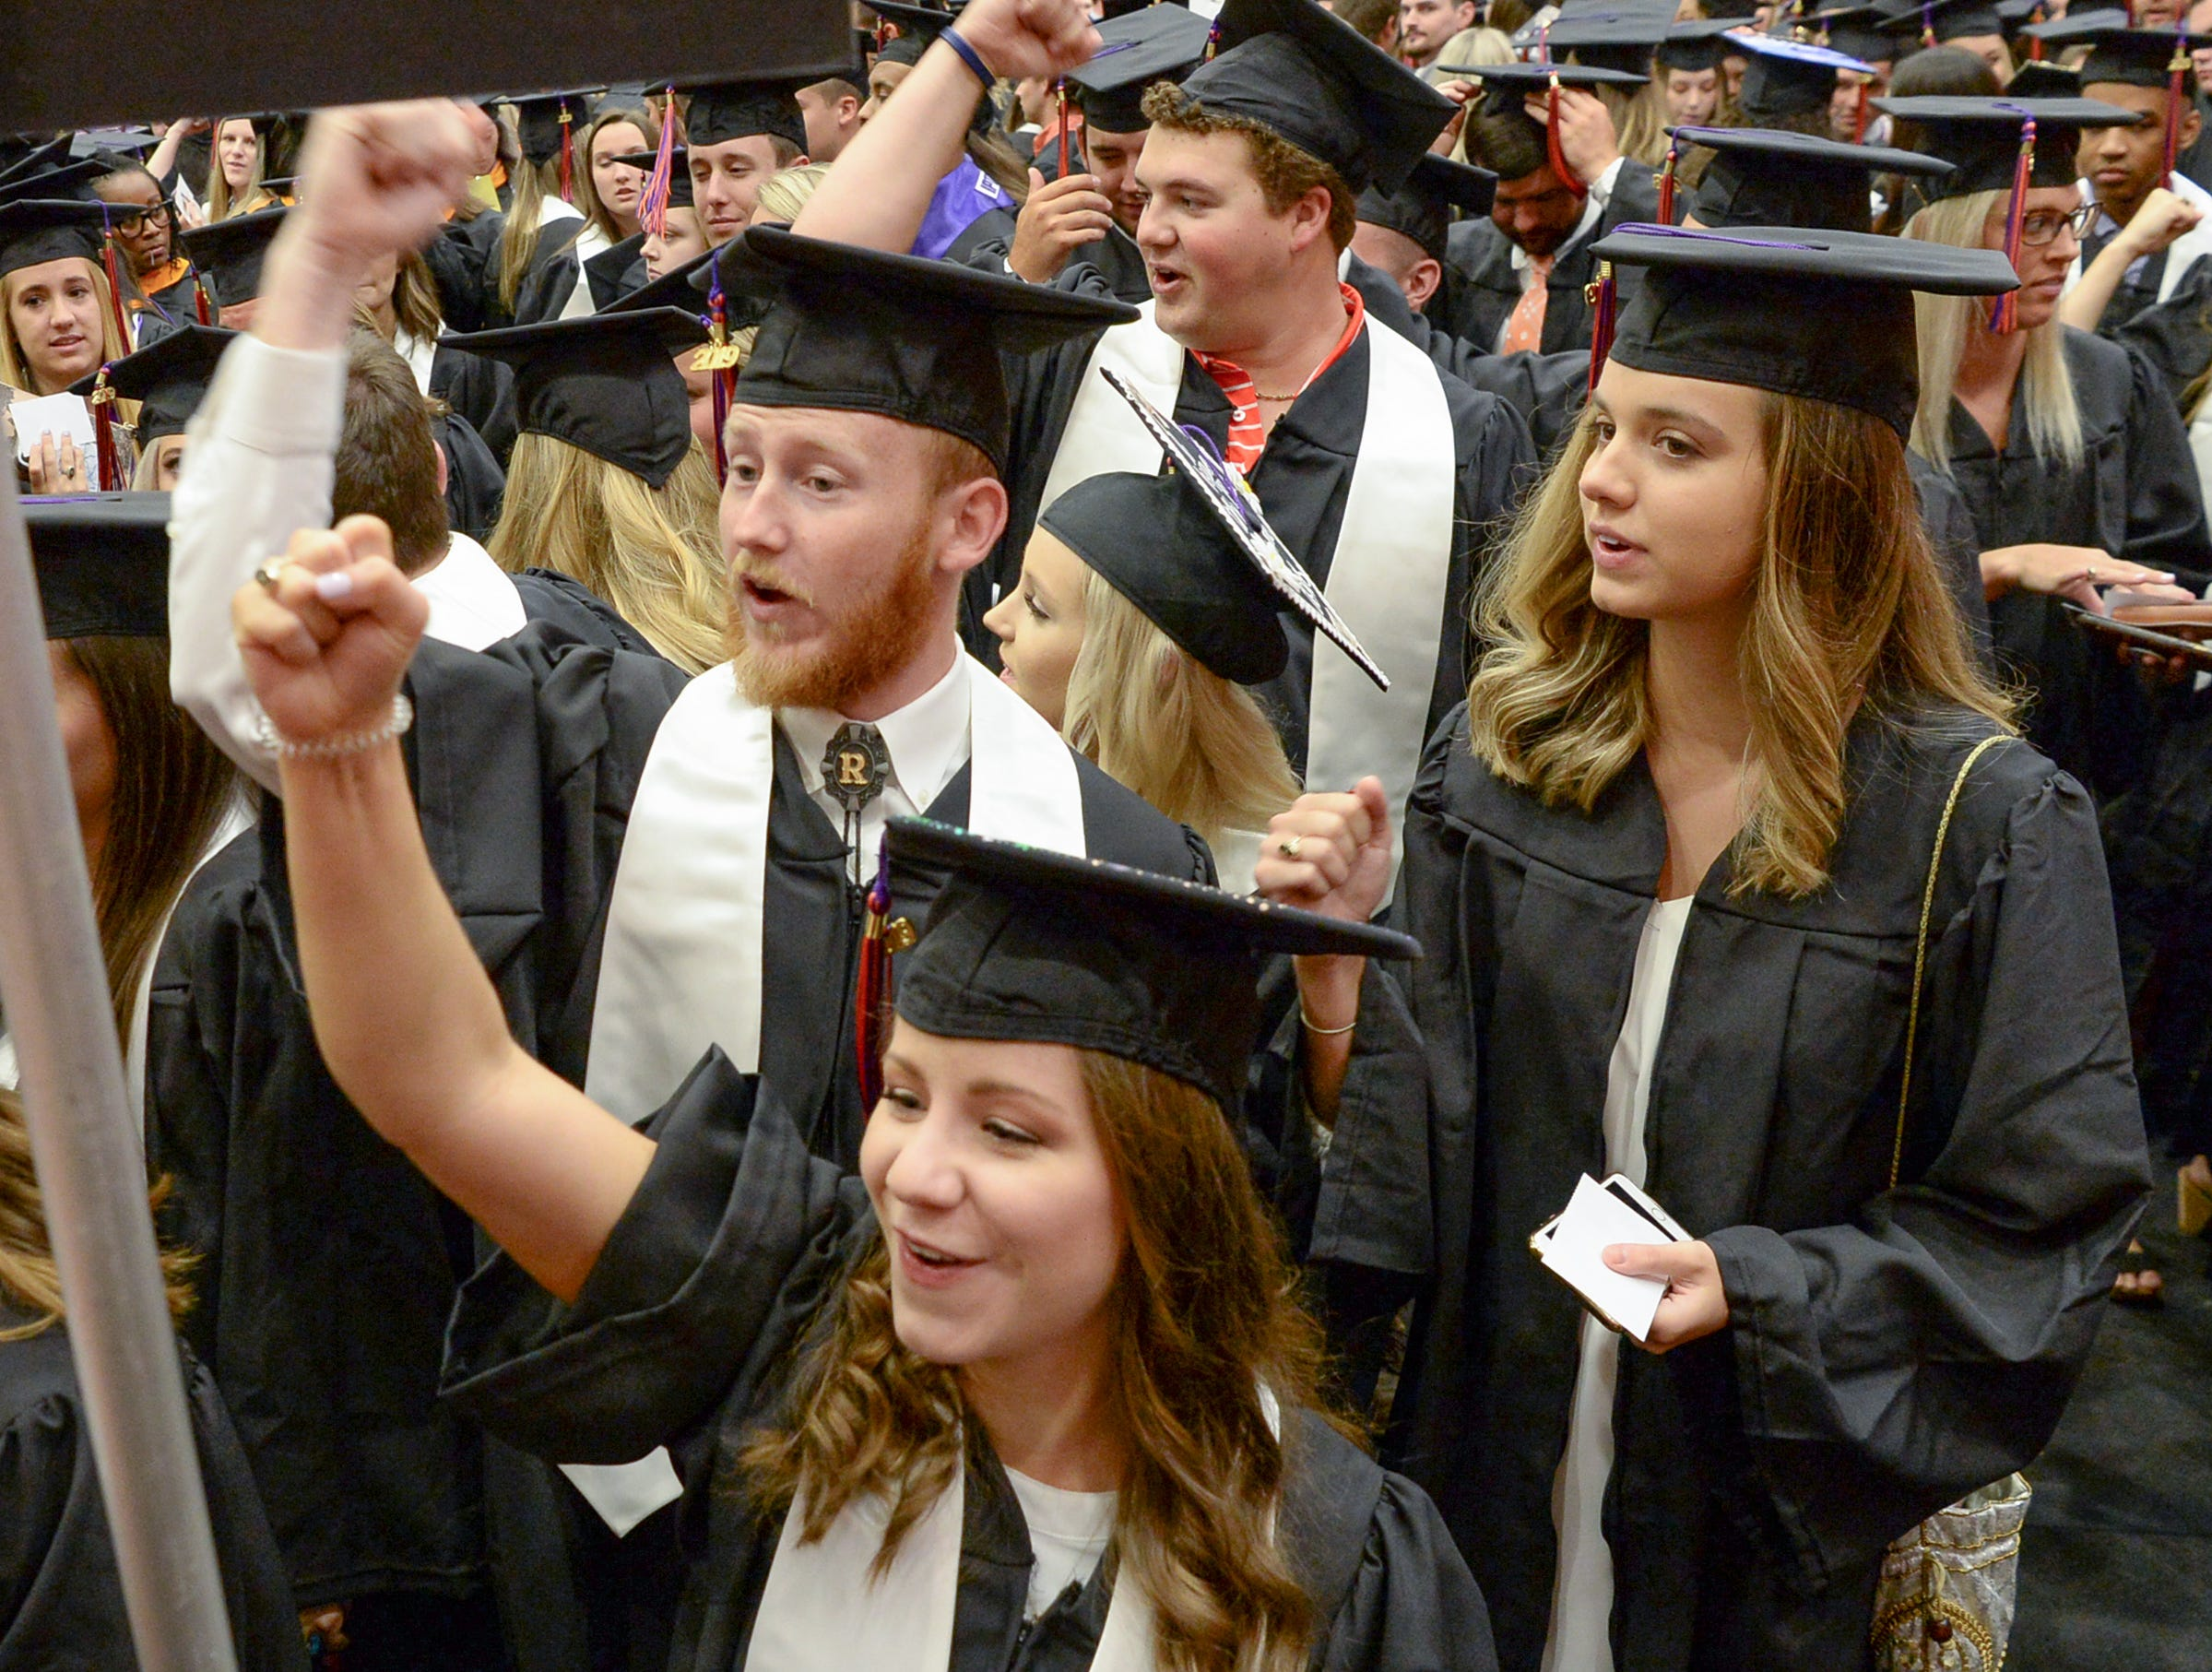 Haley Moore of Aiken joins in a cadence count cheer with friends before Clemson University commencement ceremonies in Littlejohn Coliseum in Clemson Friday, May 10, 2019.